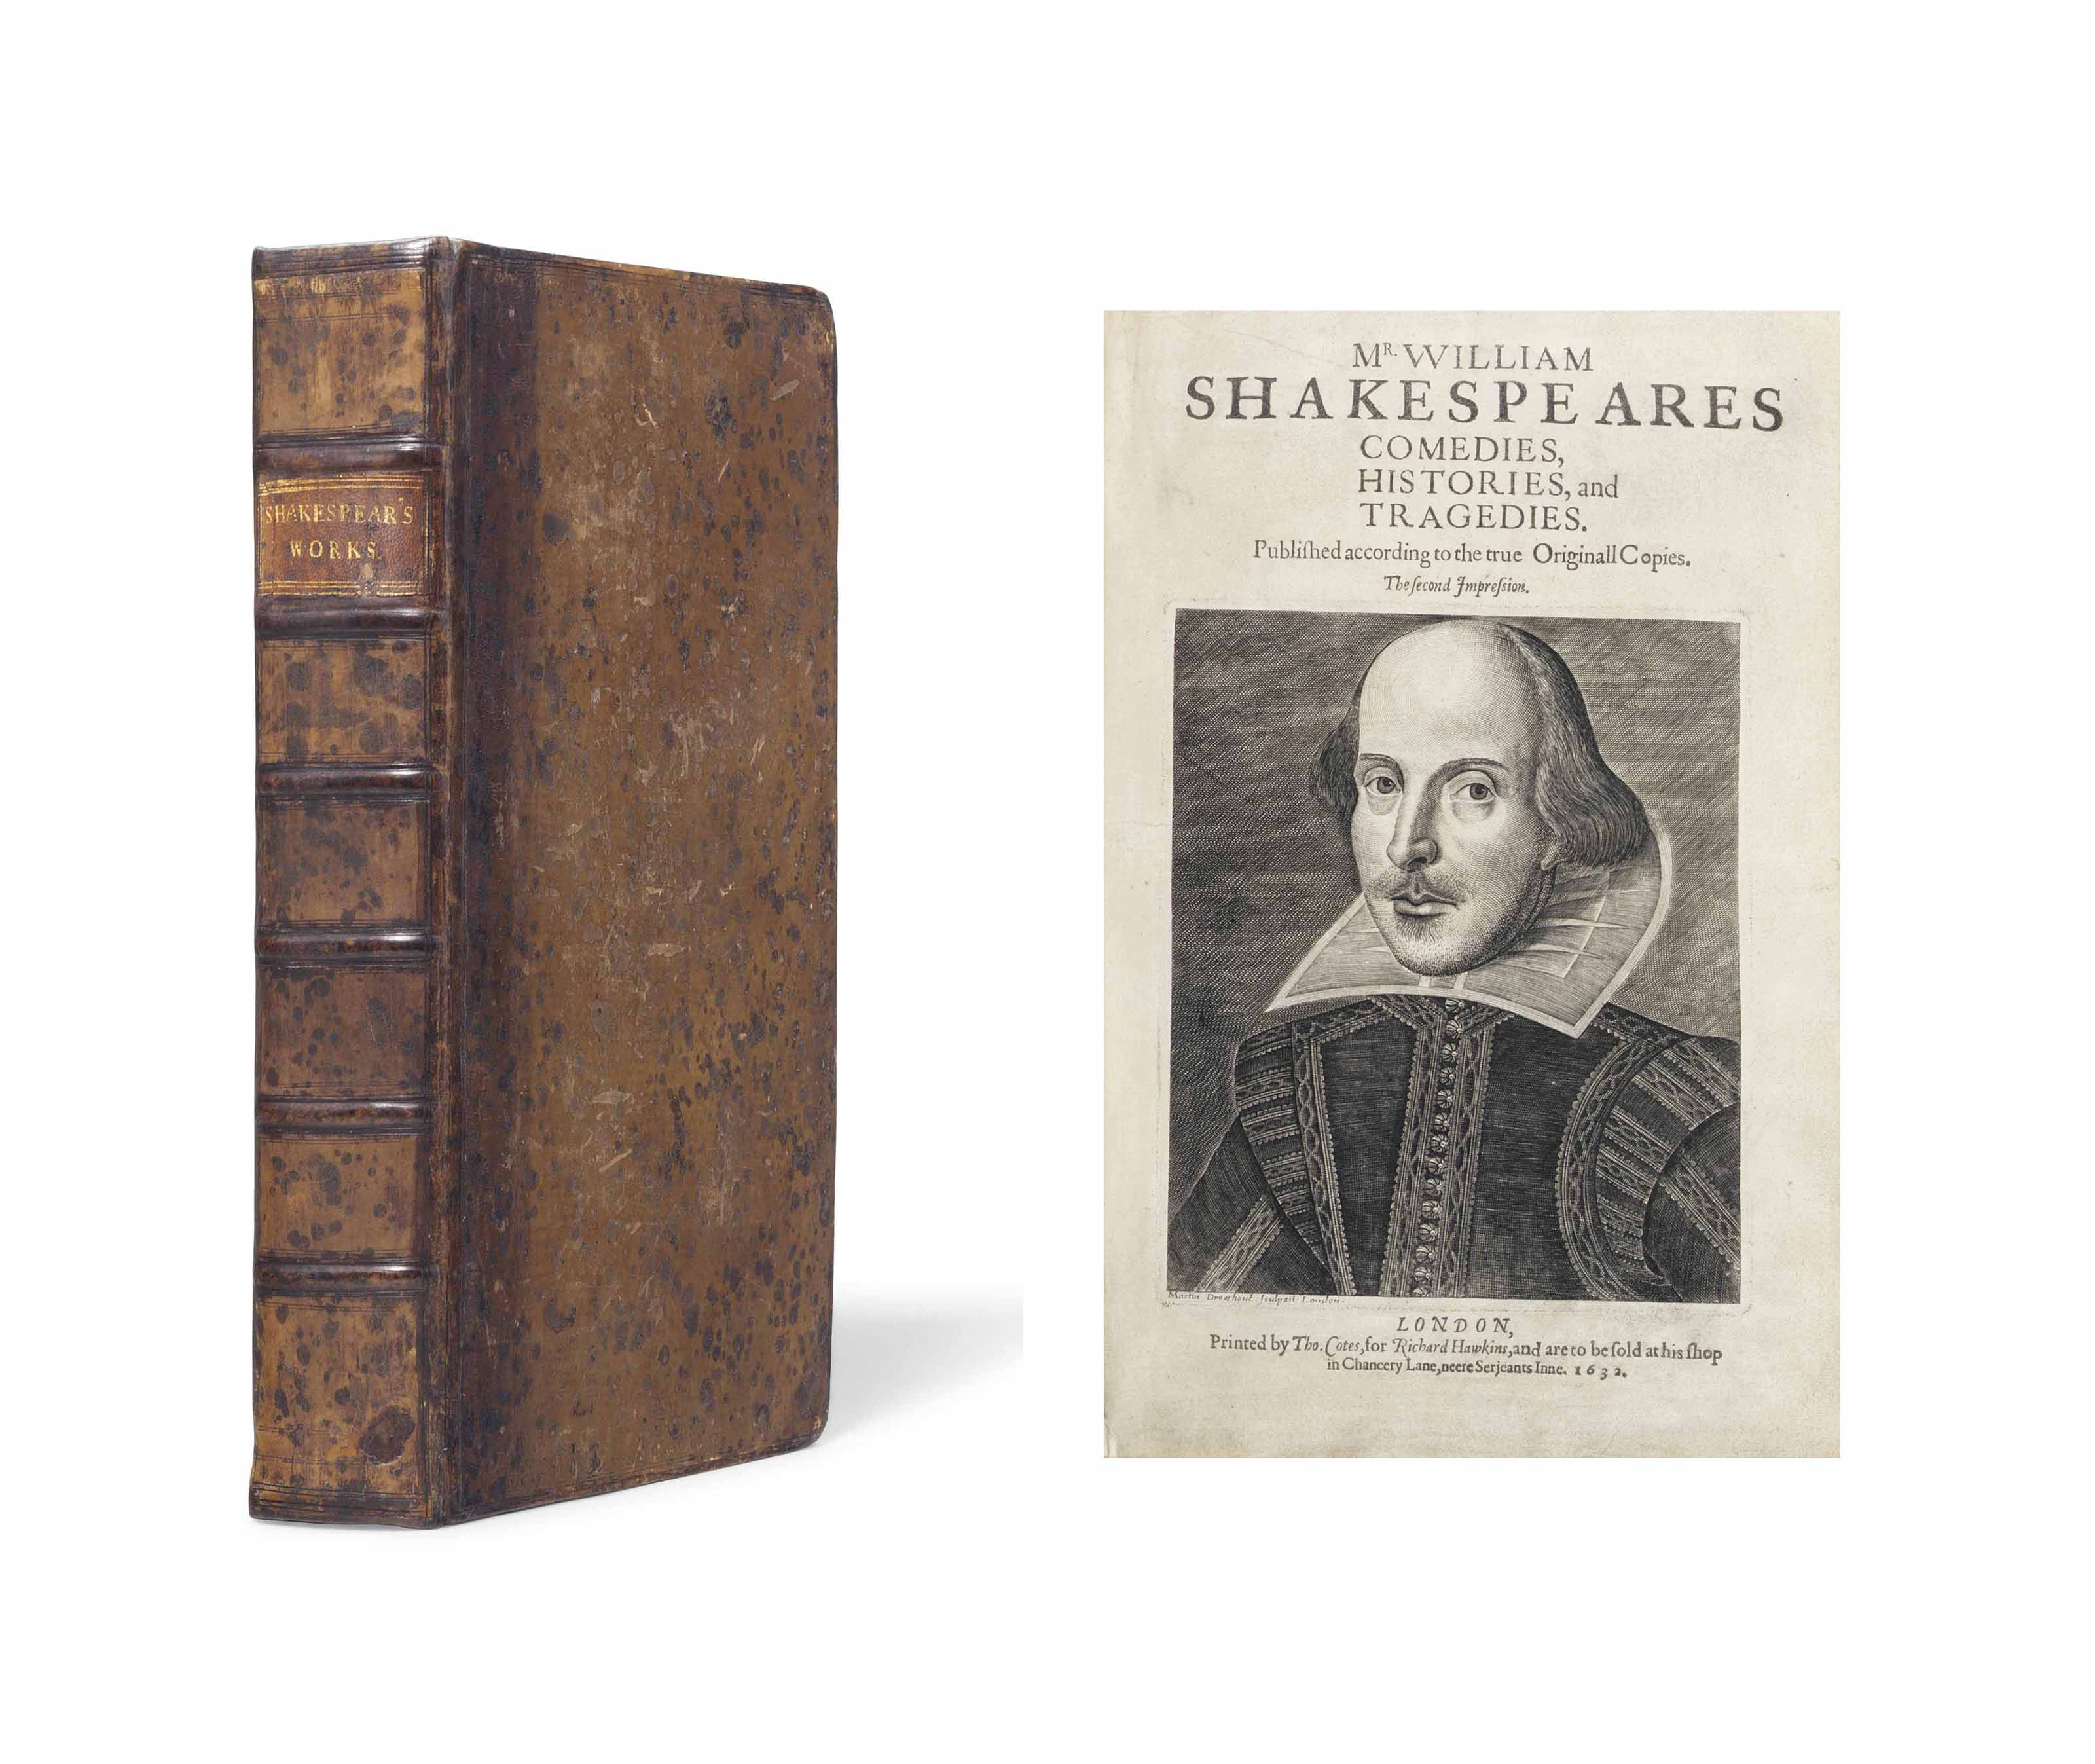 SHAKESPEARE, William (1564-1616). Comedies, Histories and Tragedies. Published according to the true Originall Copies. The second Impression. Edited by John Heminge (d. 1630) and Henry Condell (d. 1627). London: Printed by Thomas Cotes, for Robert Allot, 1632 [c. 1641].